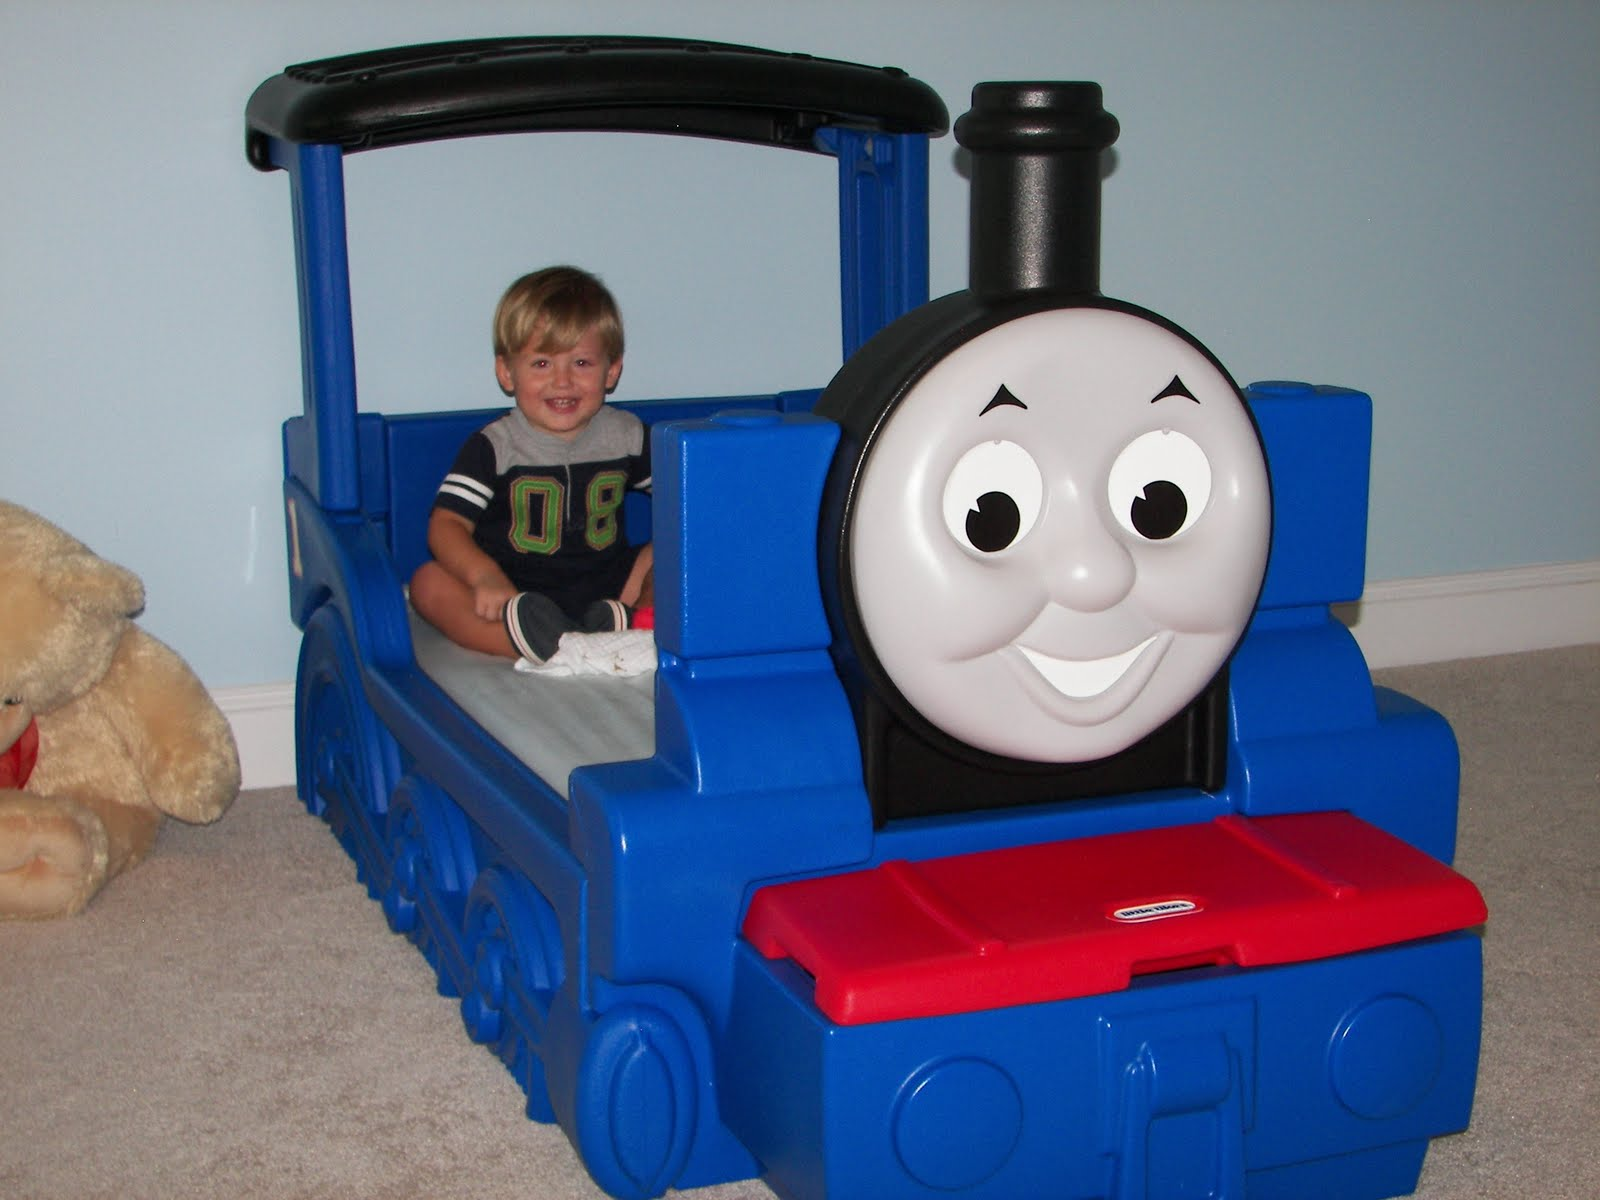 Little tikes thomas the train bed - Sunday August 29 2010